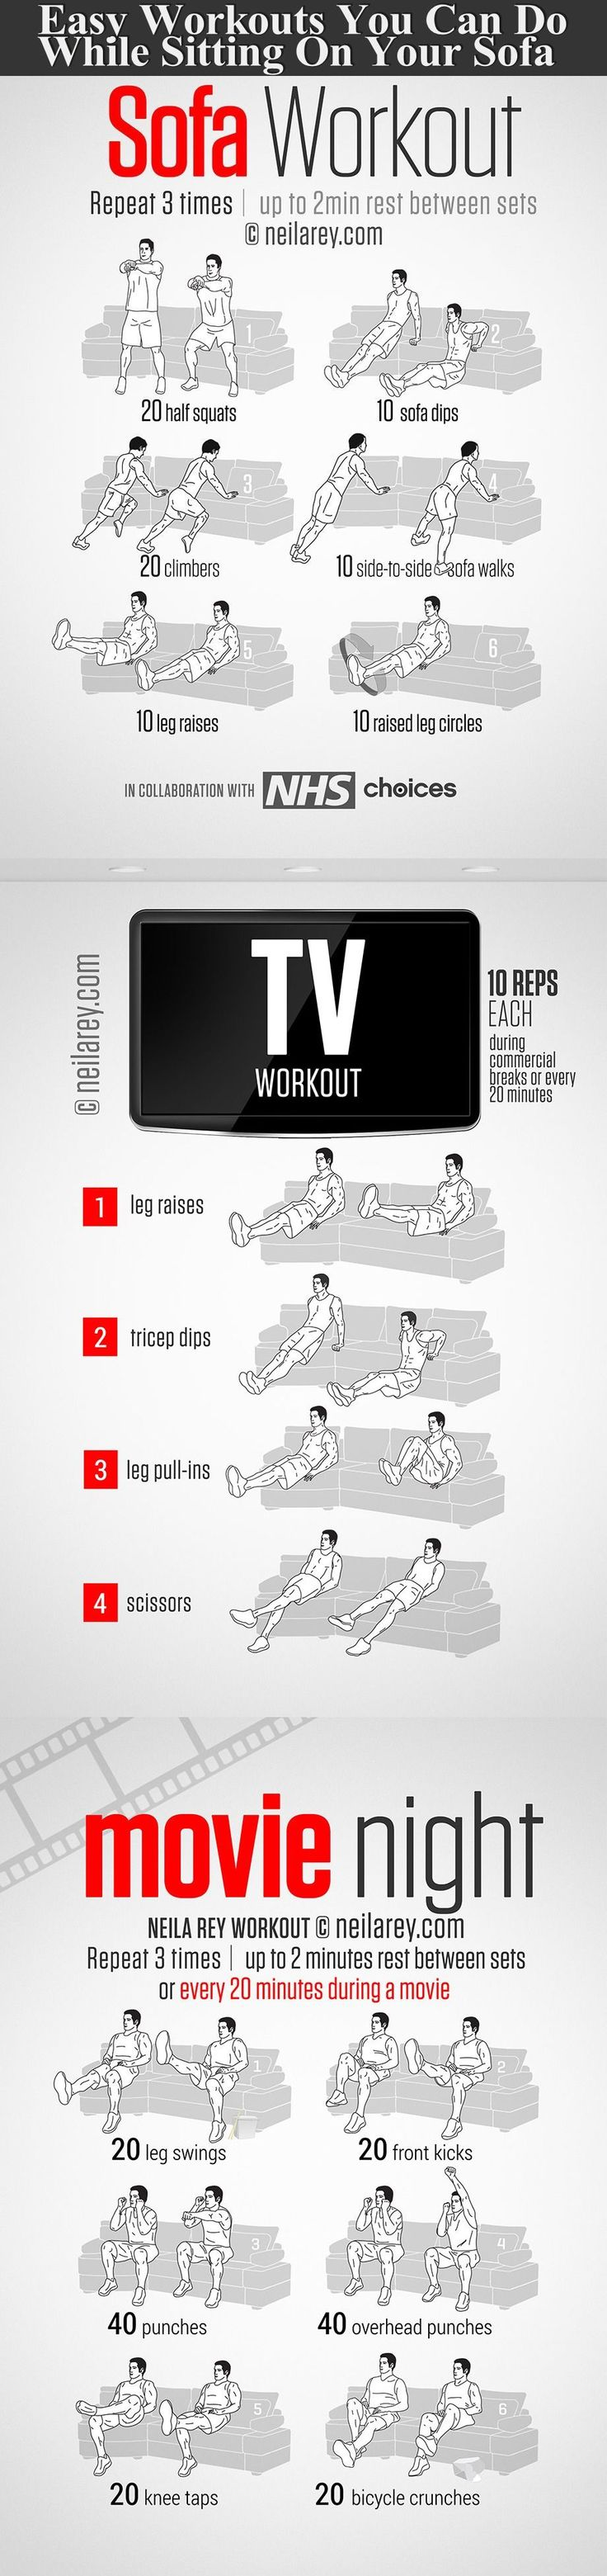 Easy Workouts You Can Do While Sitting On Your Sofa fitness exercise health healthy living home exercise fitness routine exercising exercise tutorials exercise for beginners